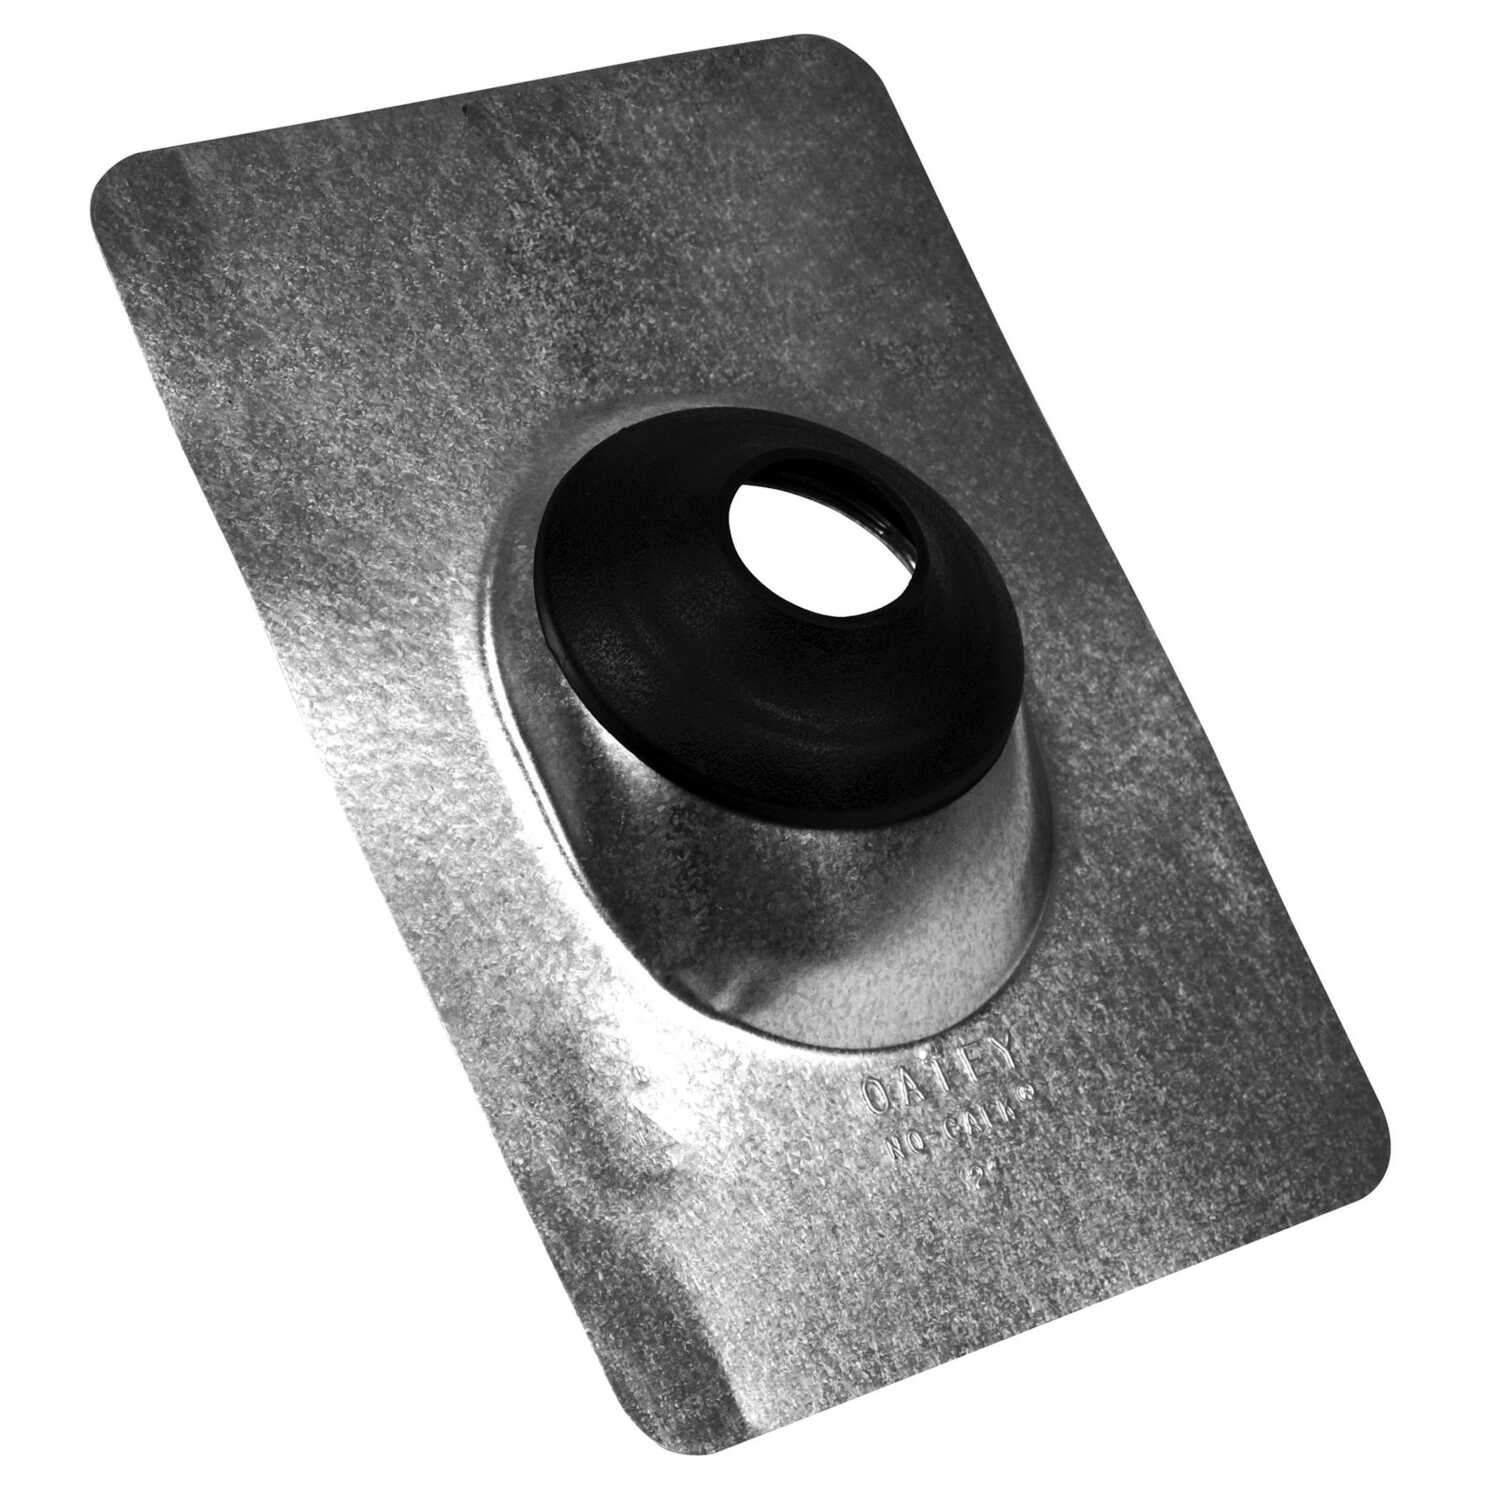 Oatey  All-Flash  3 to 4 in. H x 12 in. W x 15 in. L Silver  Galvanized Steel  Square  Roof Flashing